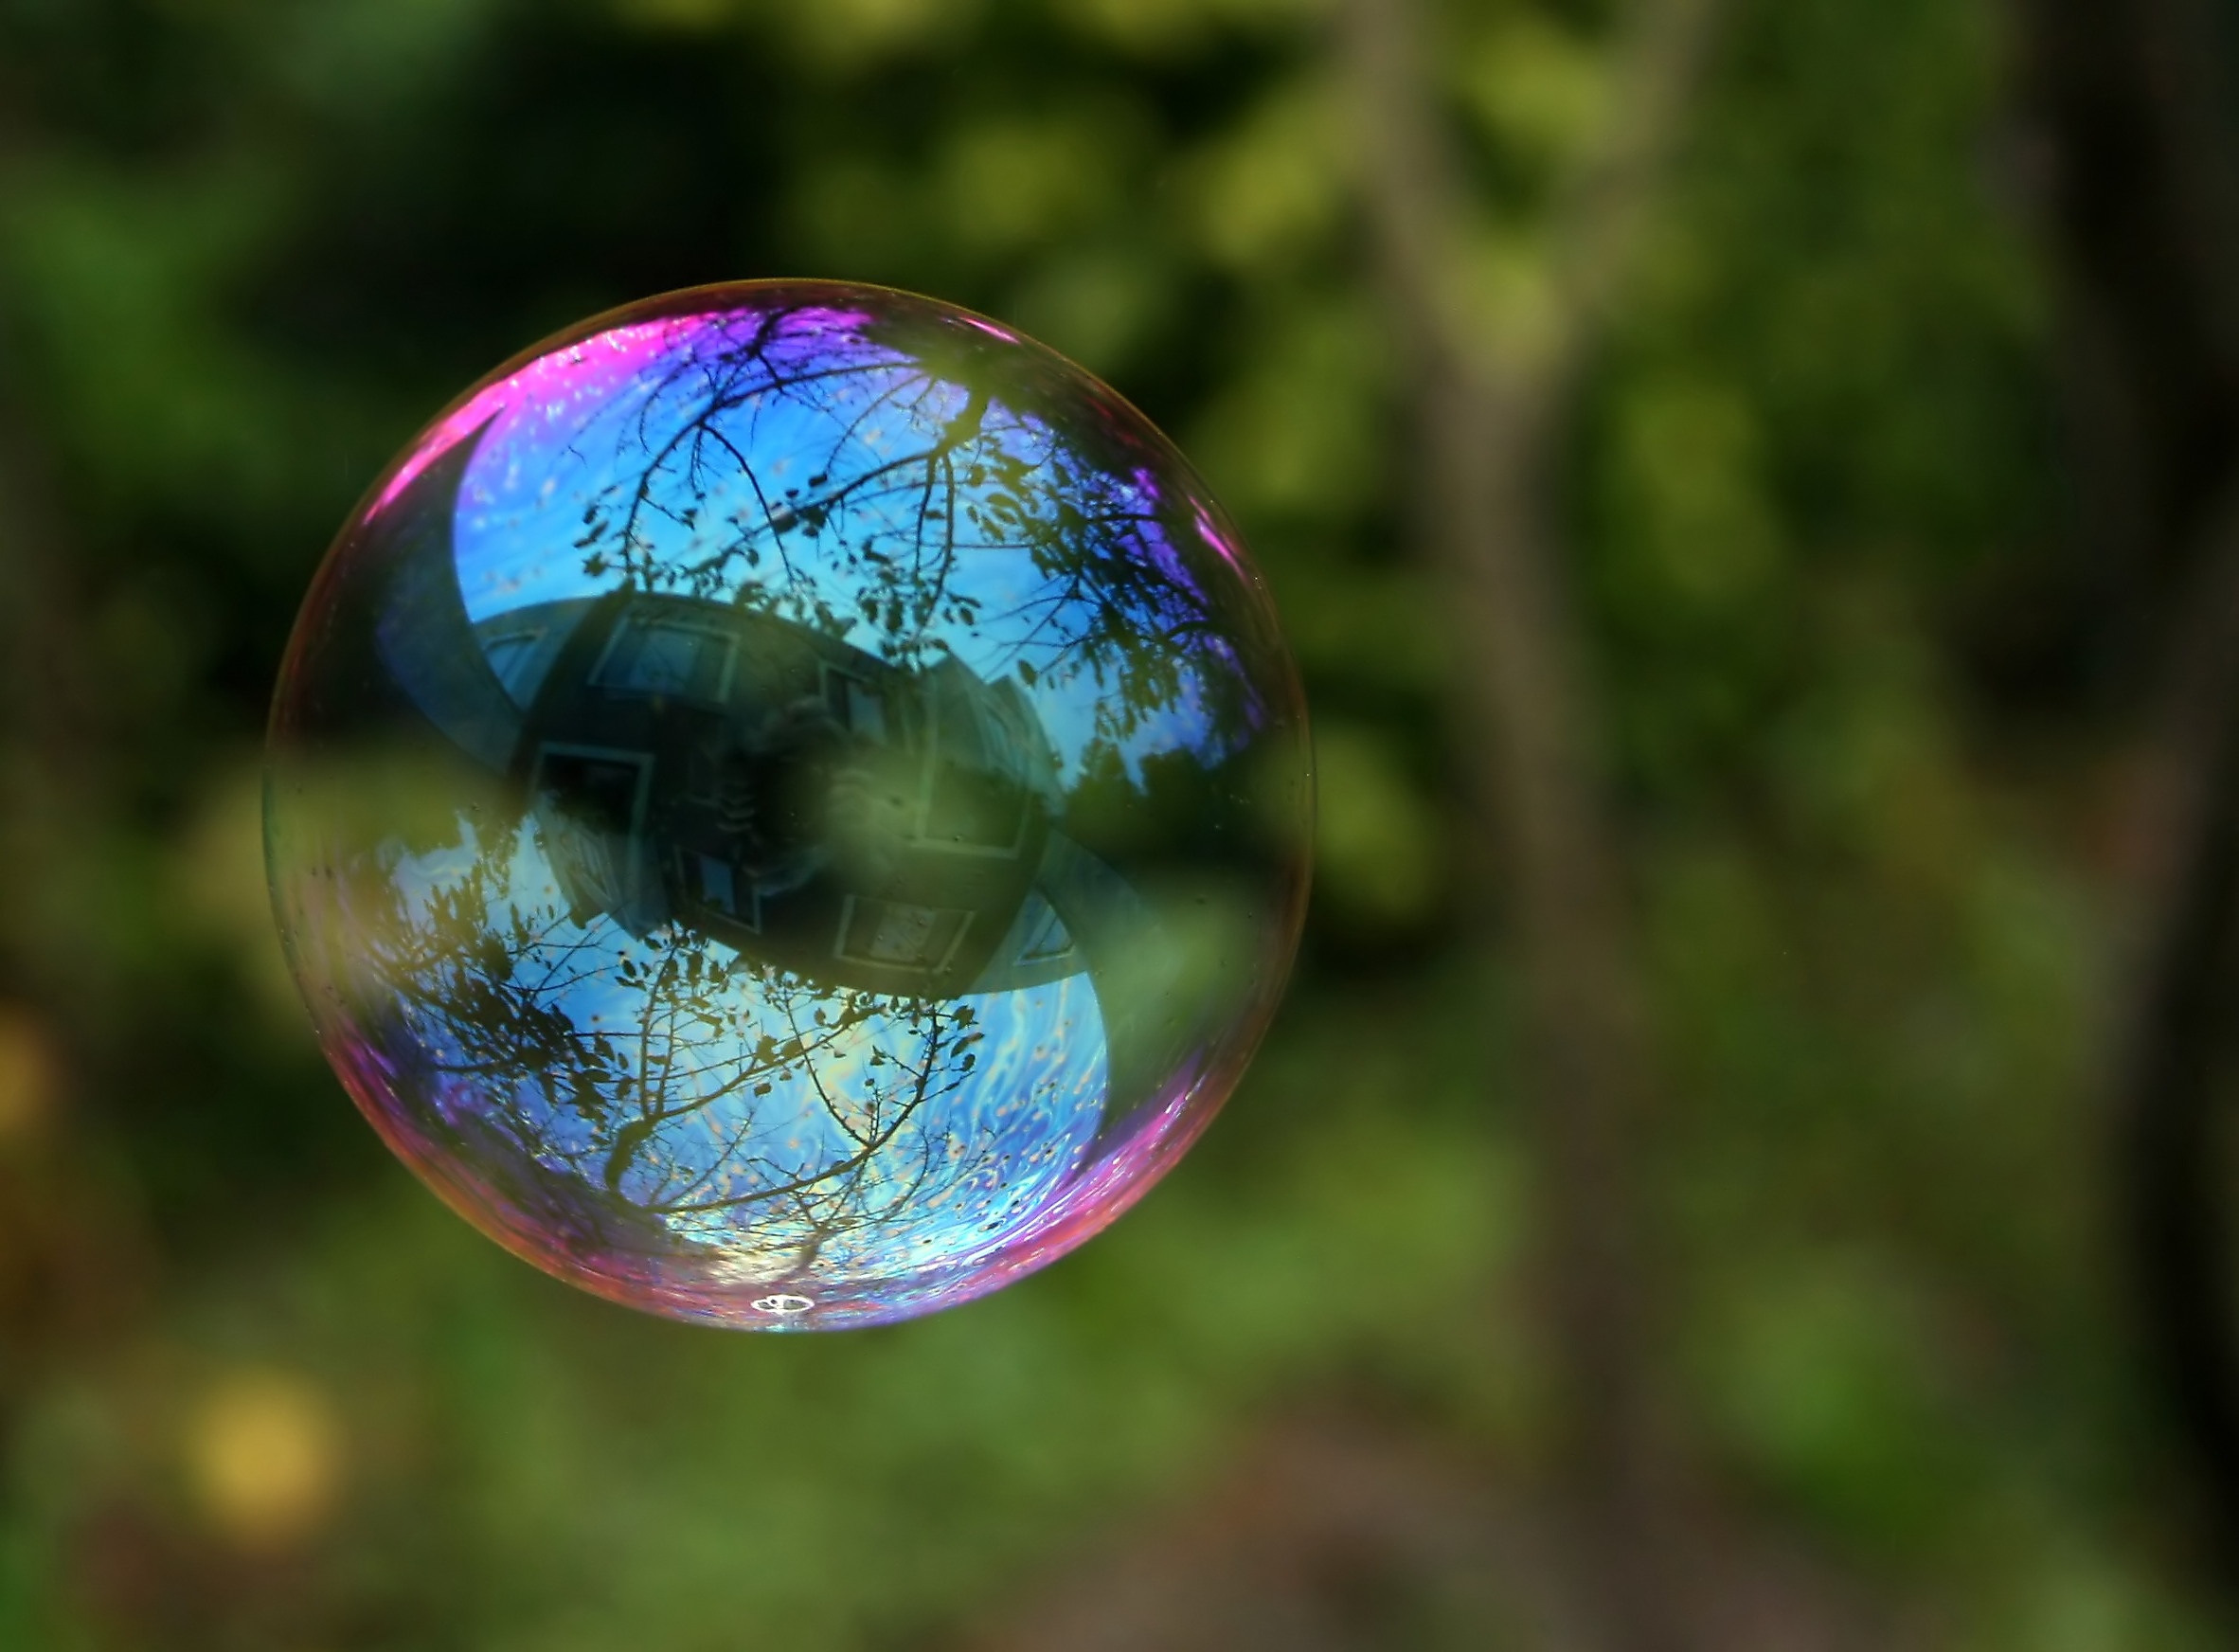 Description Reflection in a soap bubble edit.jpg